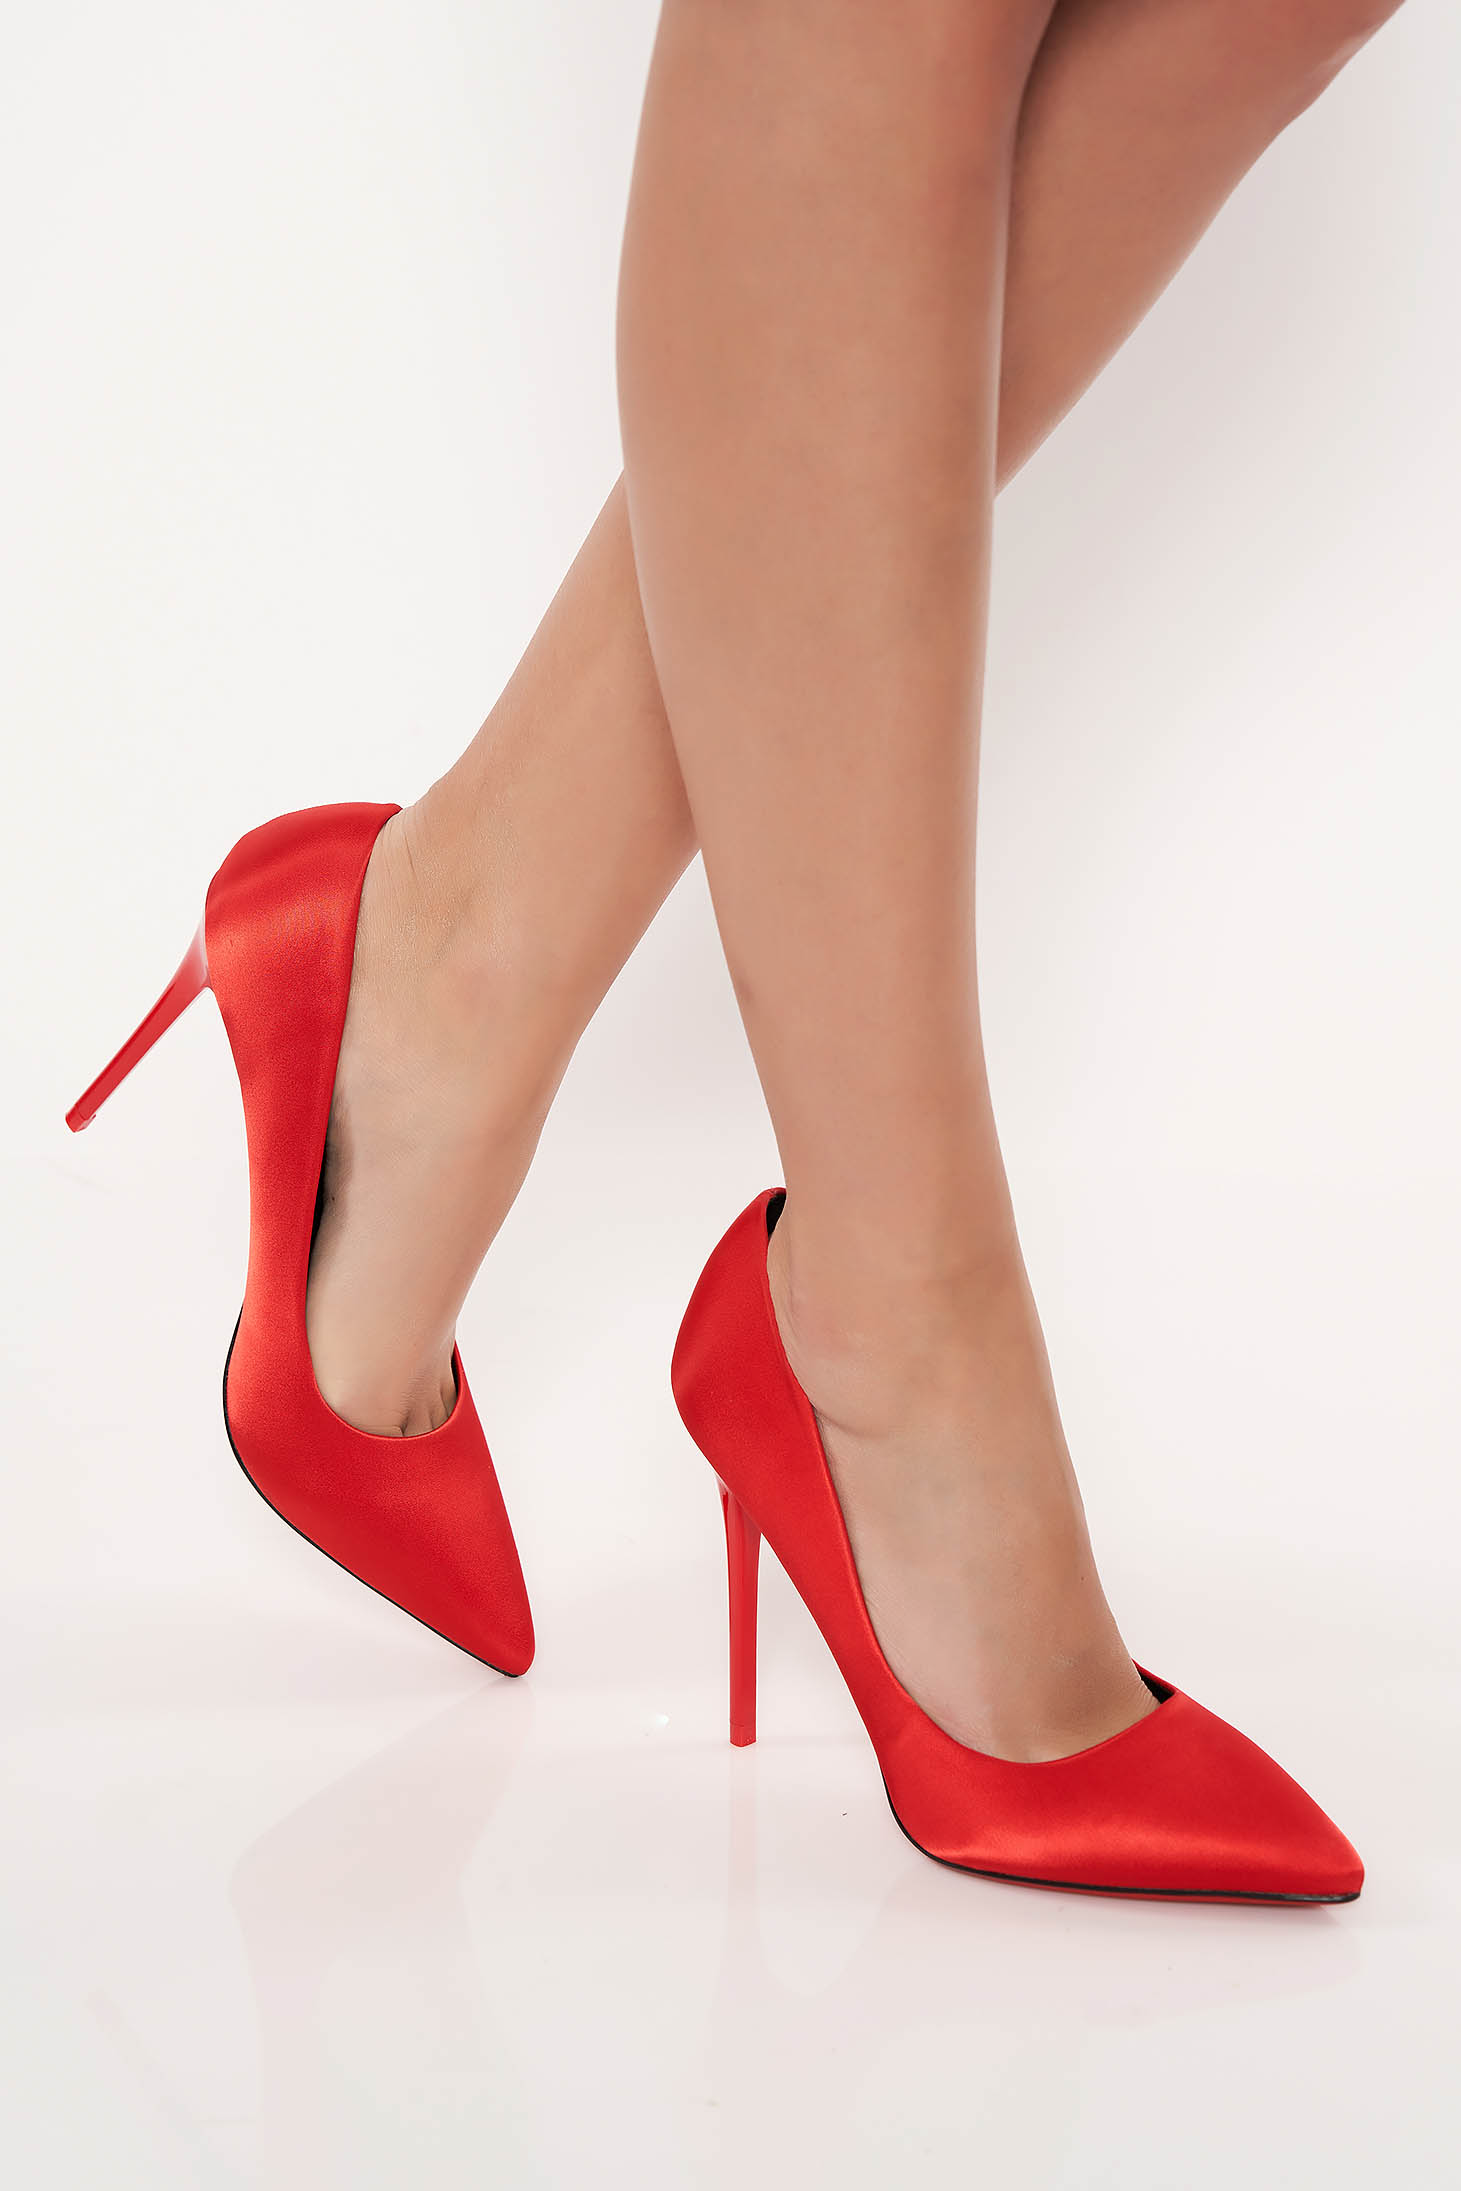 Red elegant shoes with high heels from satin fabric texture slightly pointed toe tip